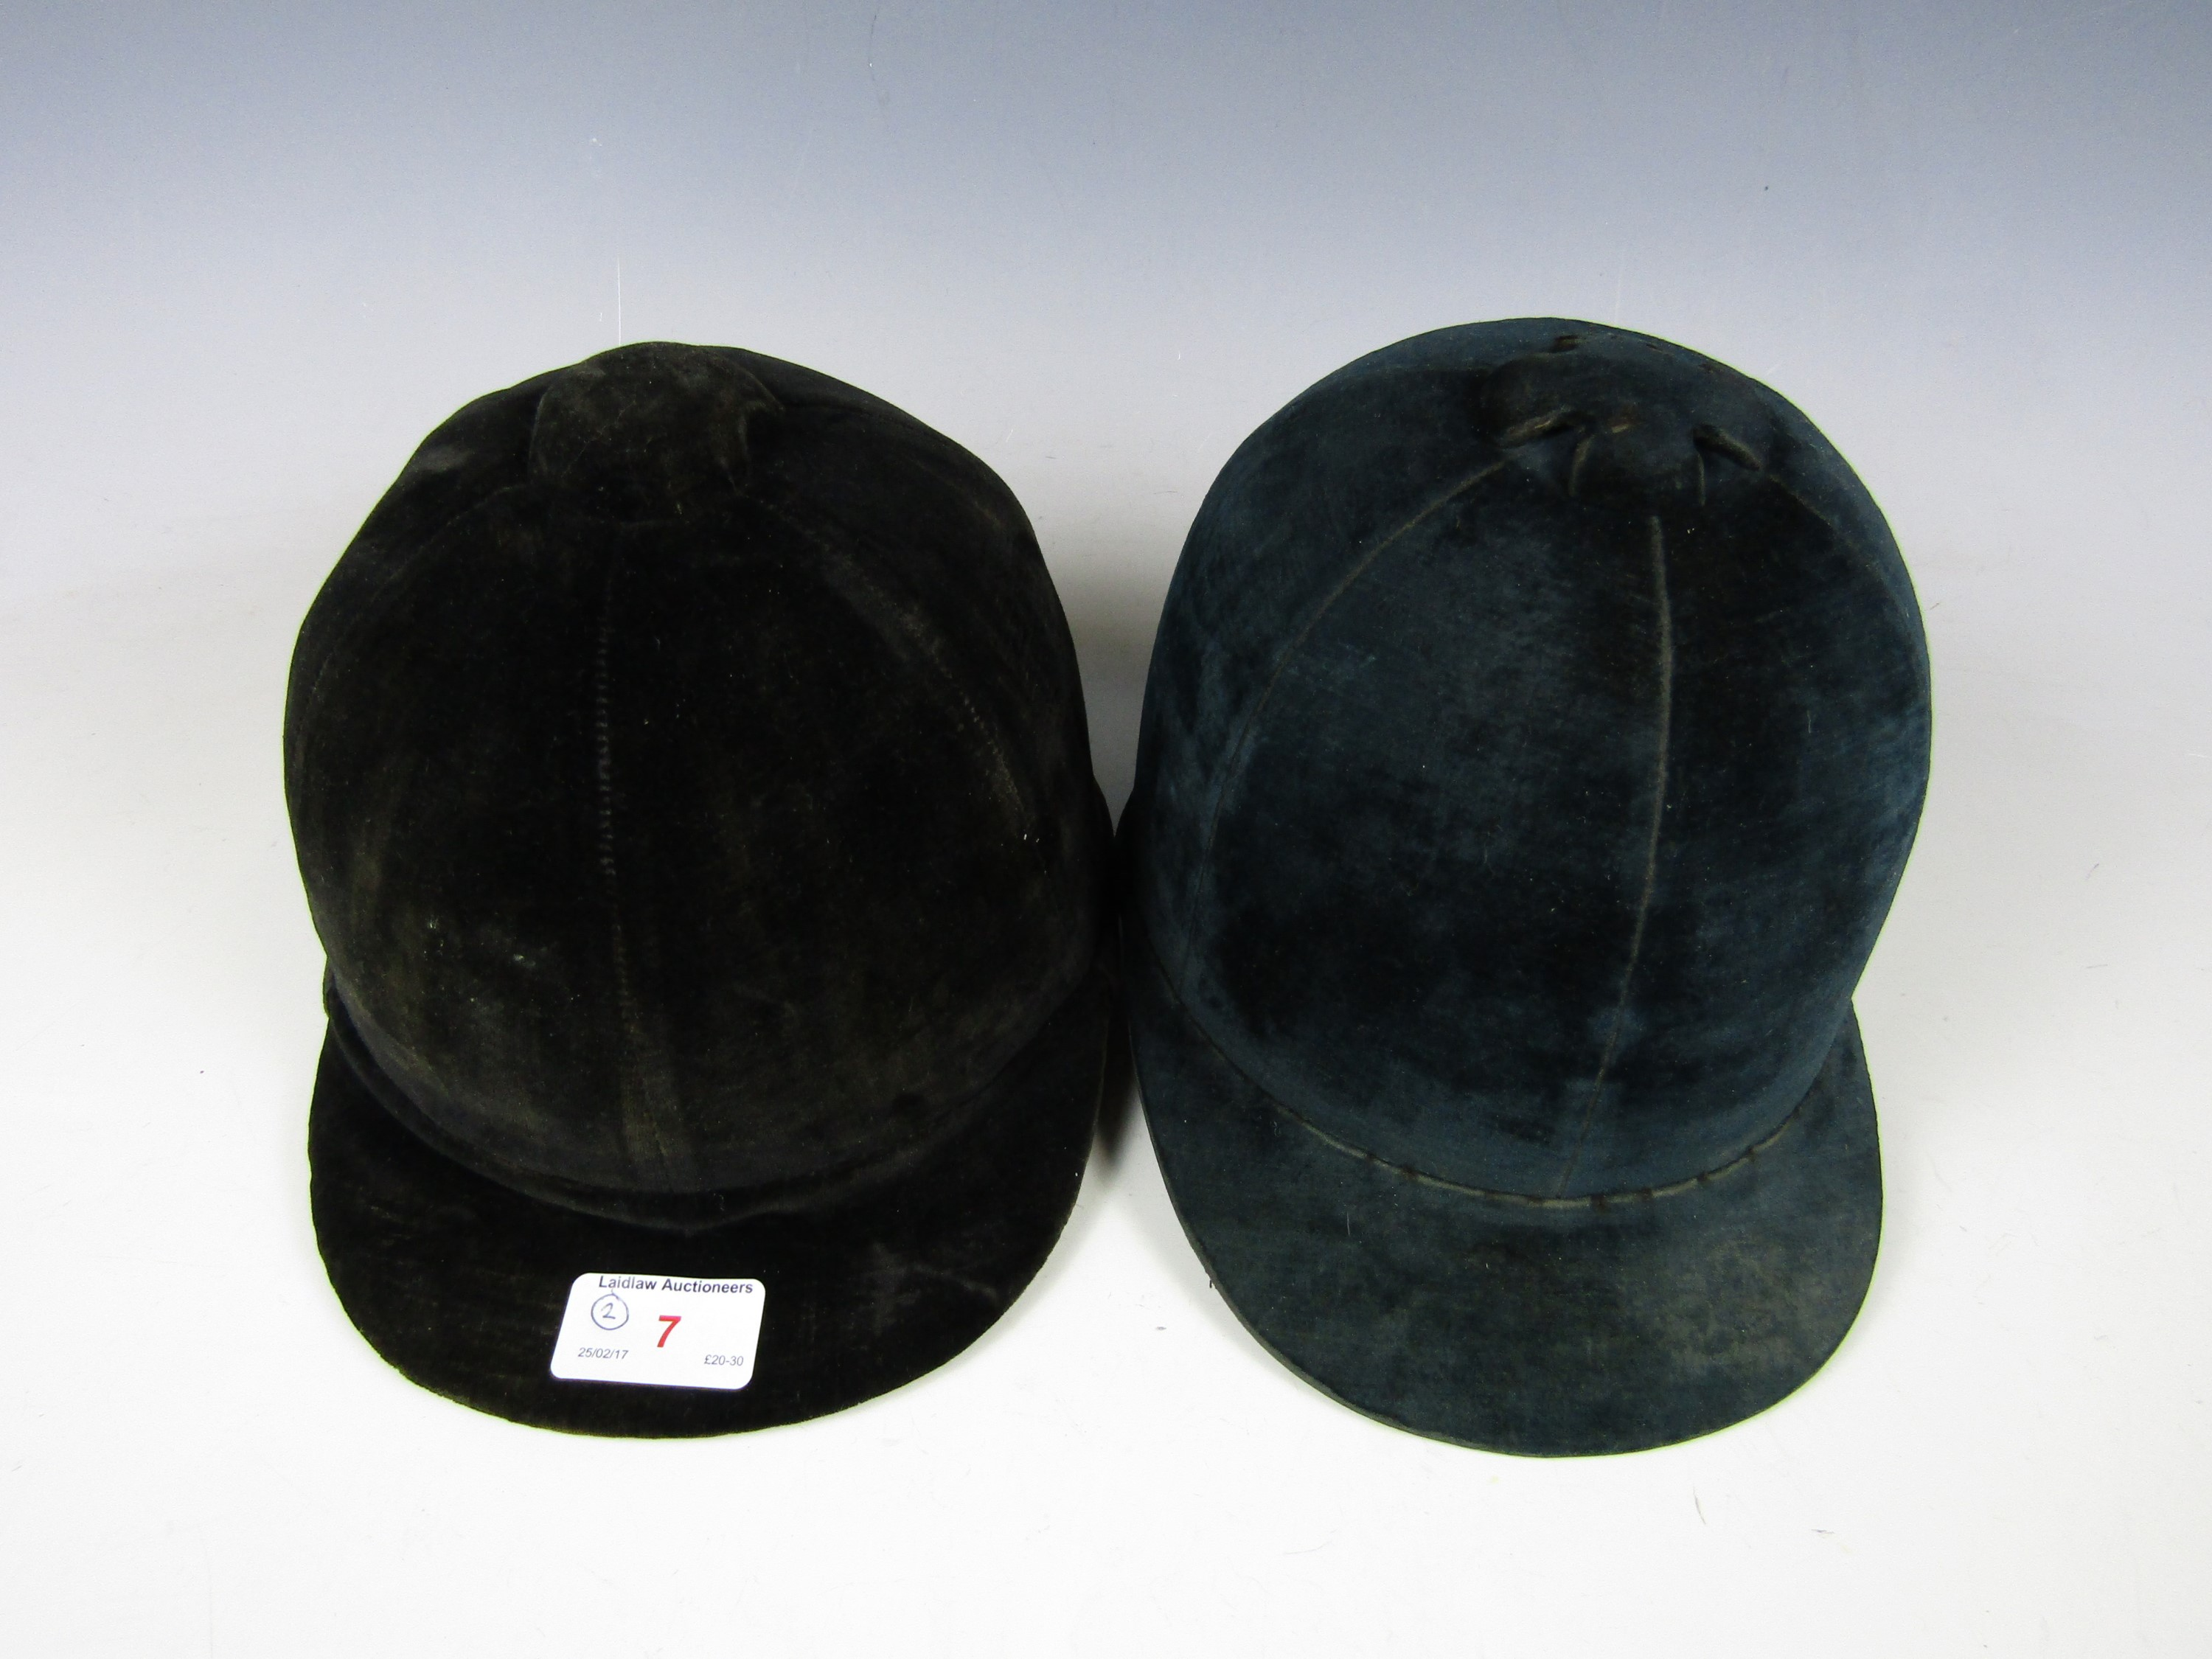 Lot 7 - Two early 20th century riding hats (sold as collectors' items)